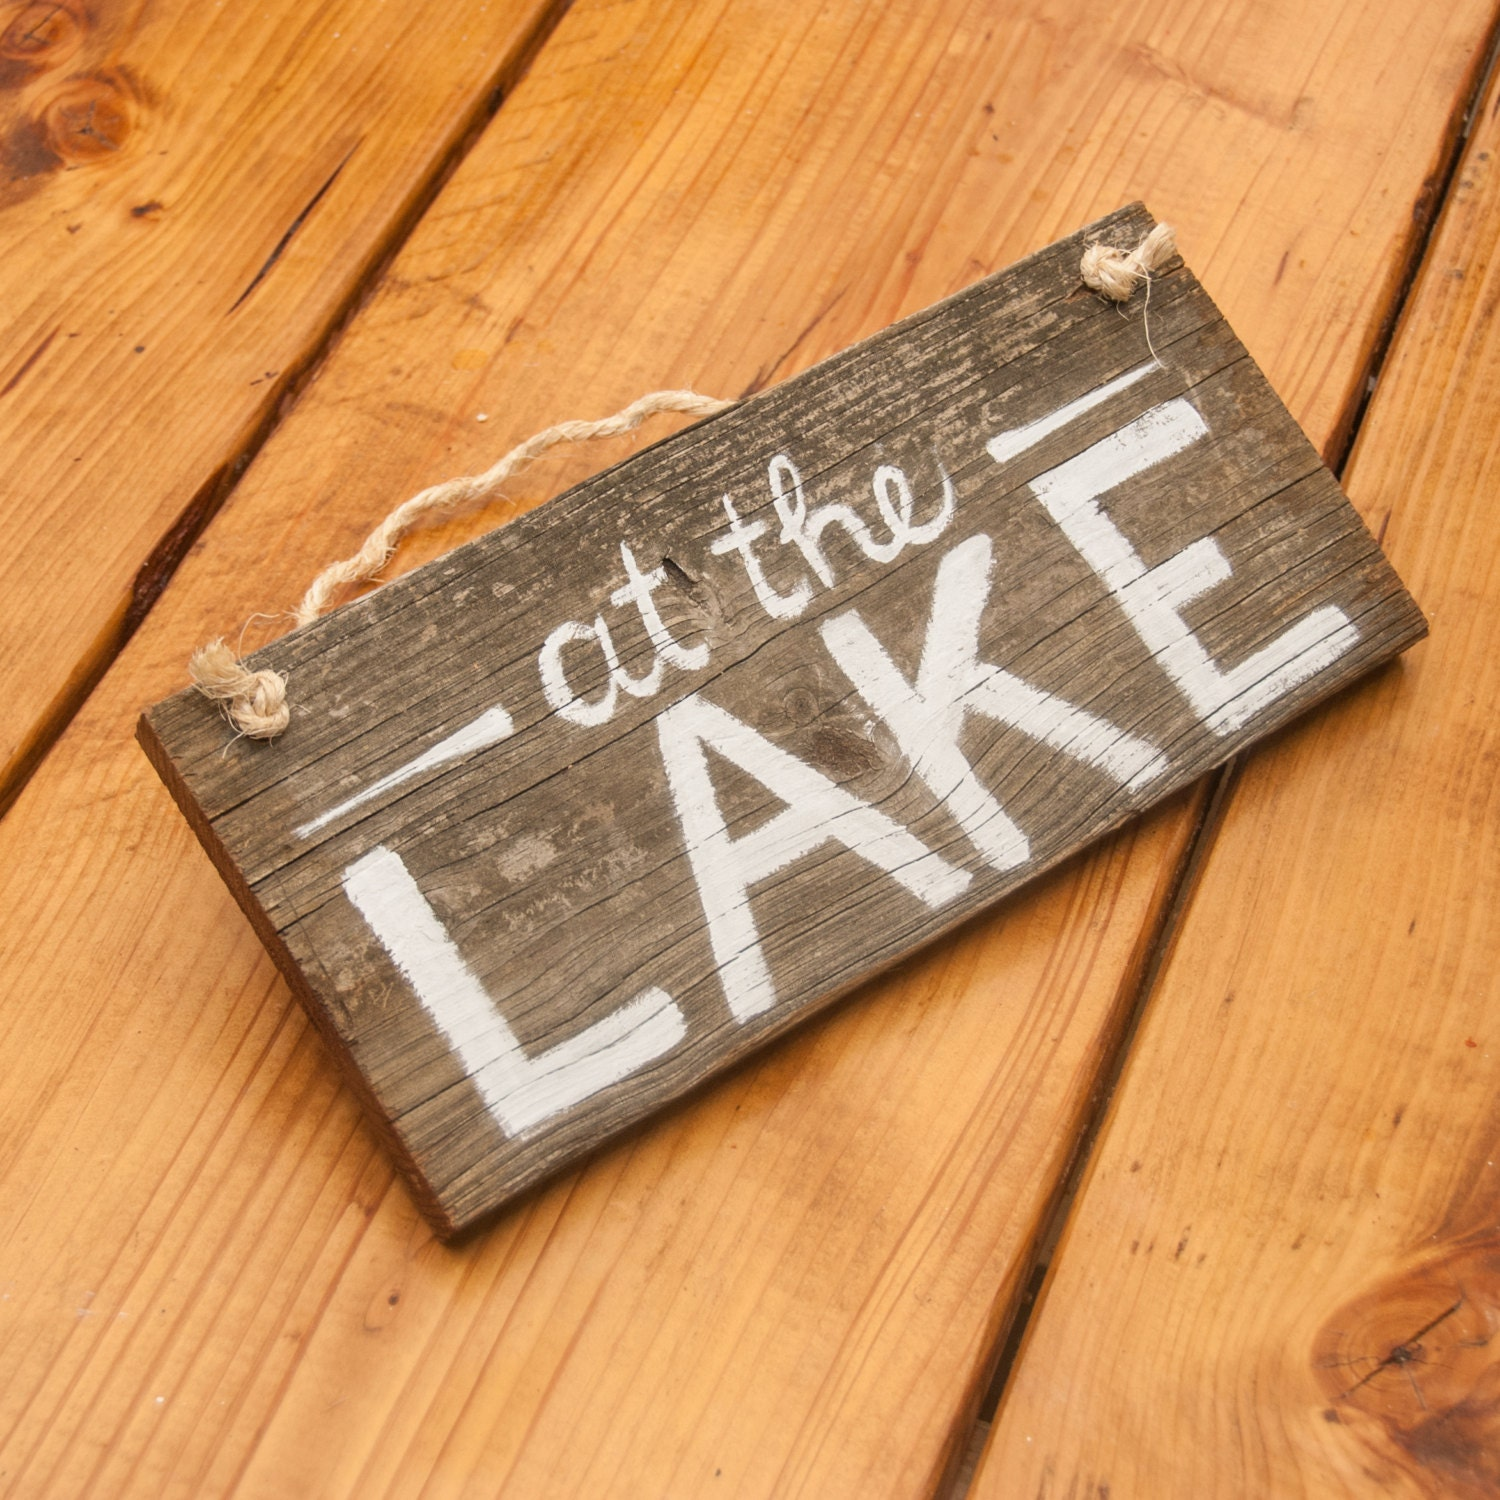 Rustic Lake House Decorating Ideas Rustic Lake House: Lake House Decor Lake Life Lake Signs Lake Decor By